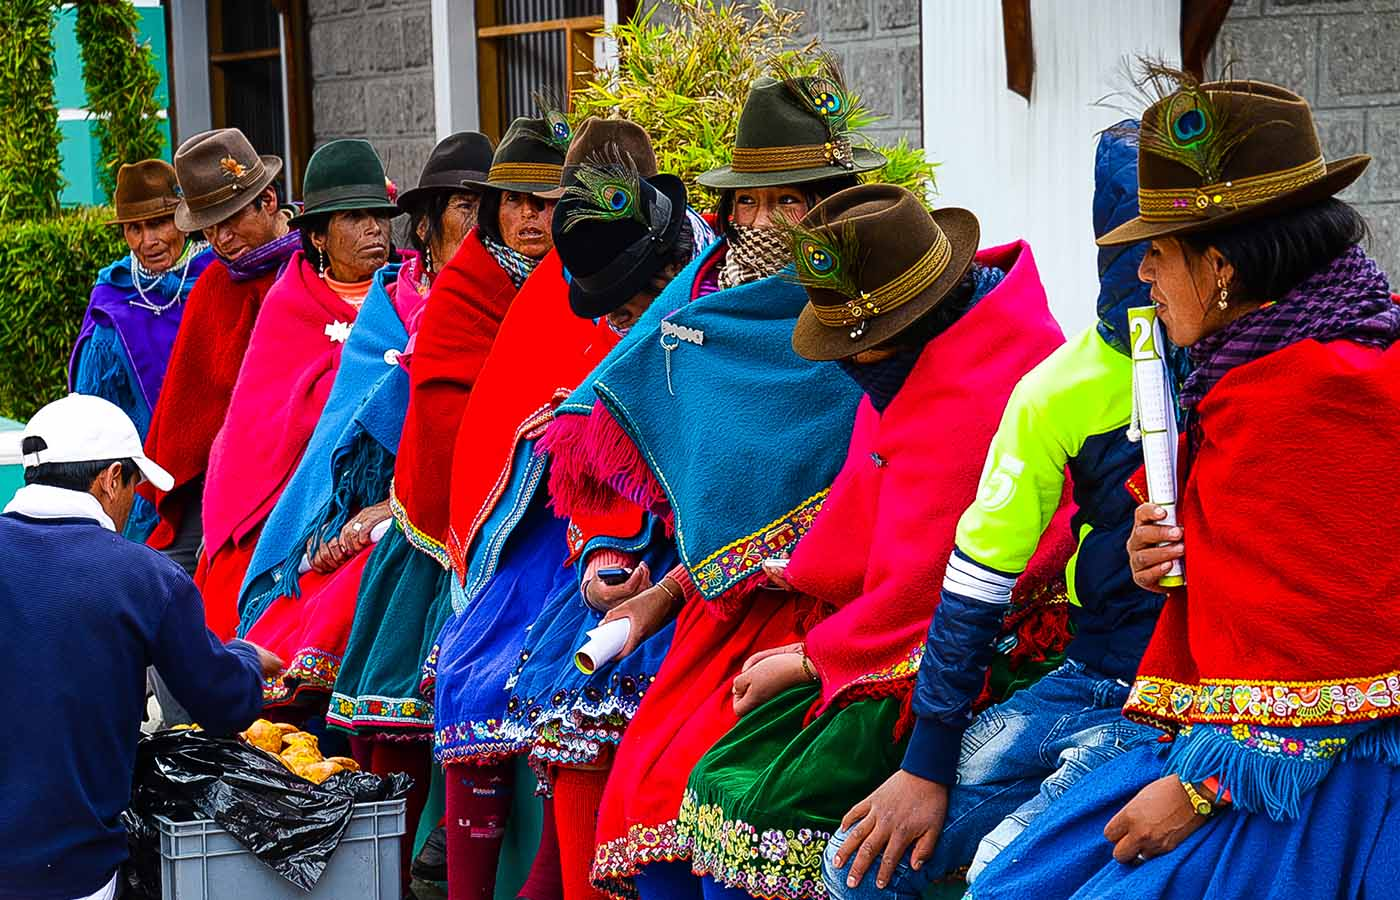 Culture - Ecuador's culture is greatly influenced by its Hispanic mestizo majority and Spanish Heritage. However, there is also distinct influences on Ecuadorian culture from Amerindian traditions and elements of African culture.